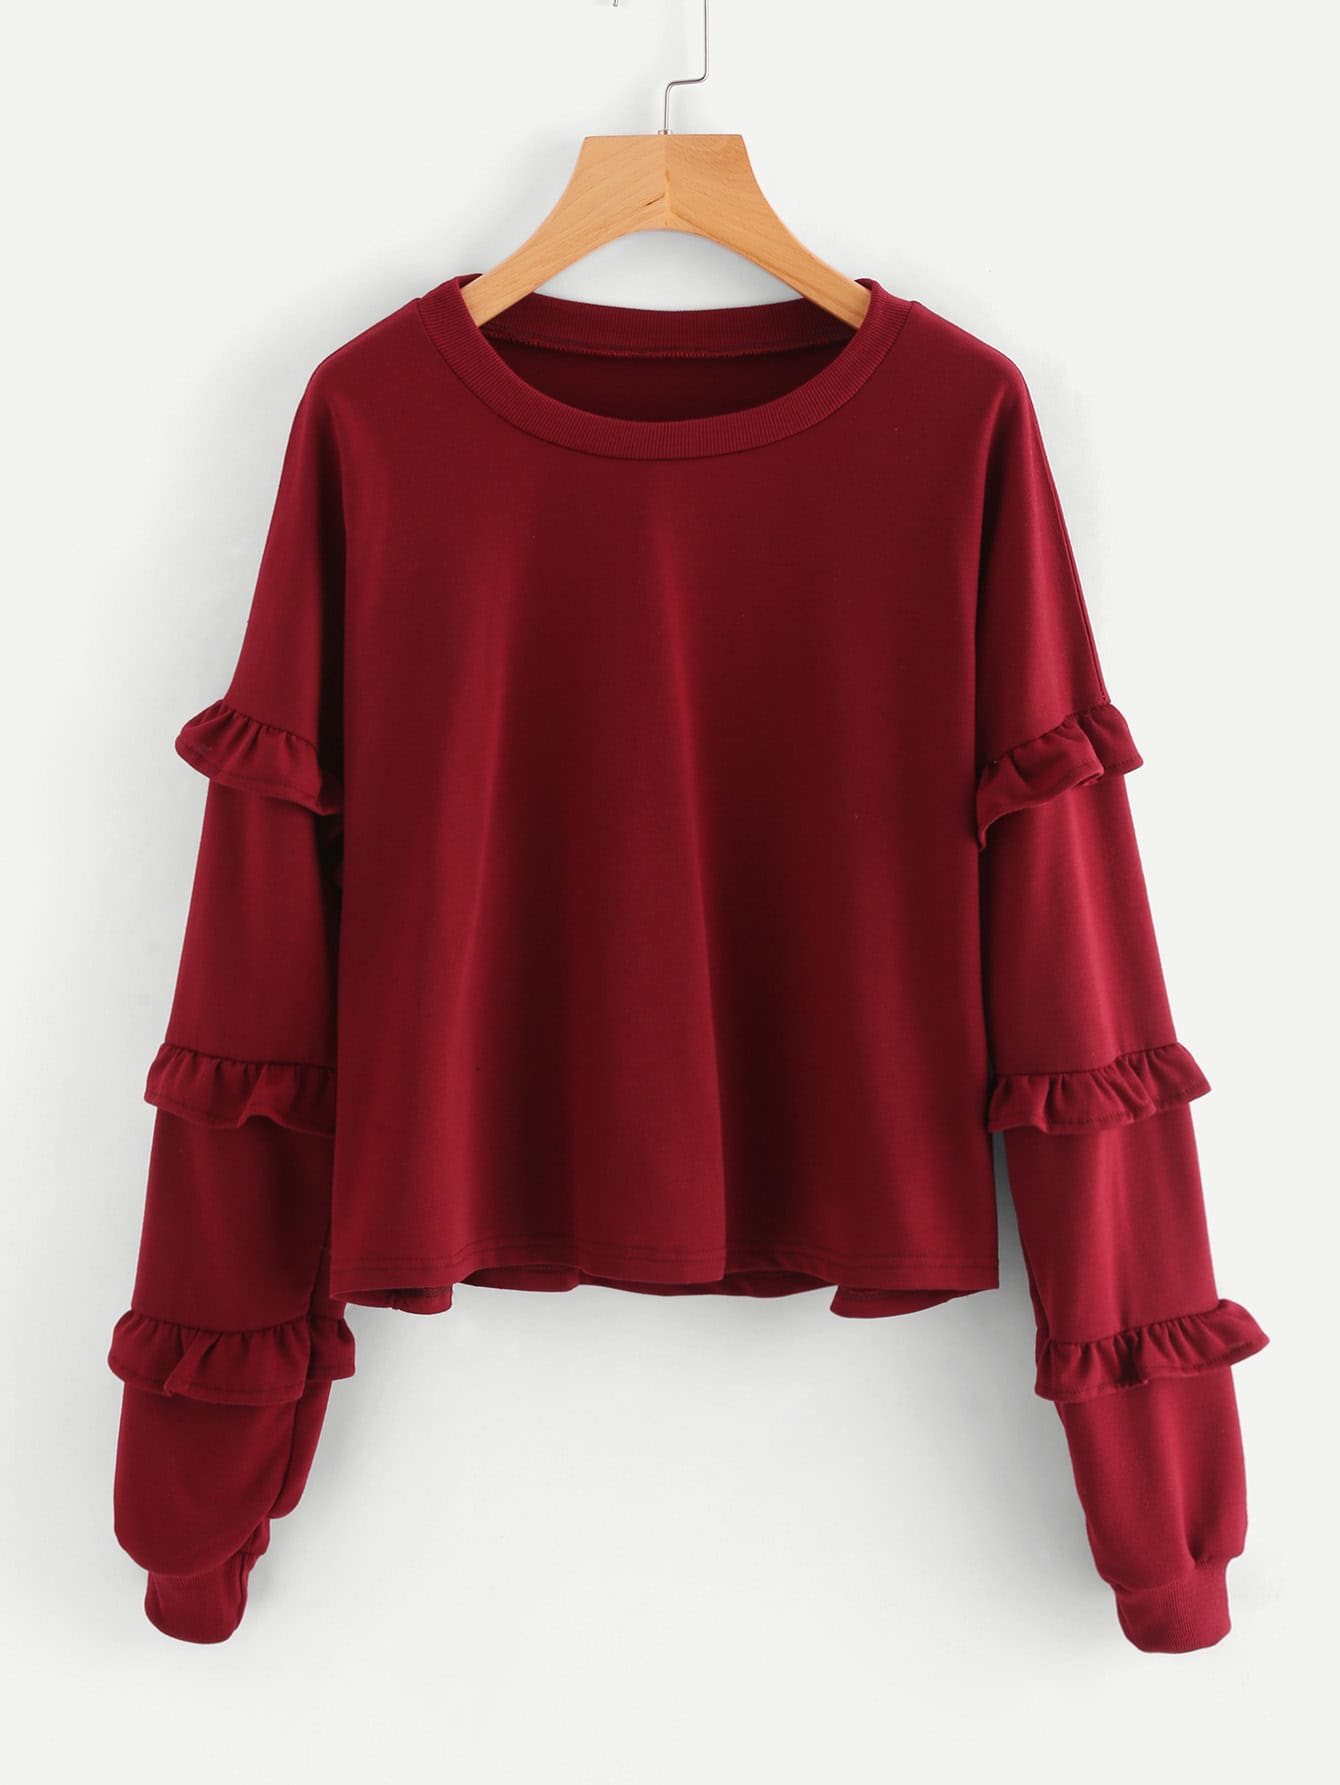 Tiered Frill Trim Drop Shoulder Sweatshirt drop shoulder frill hem batwing sweatshirt